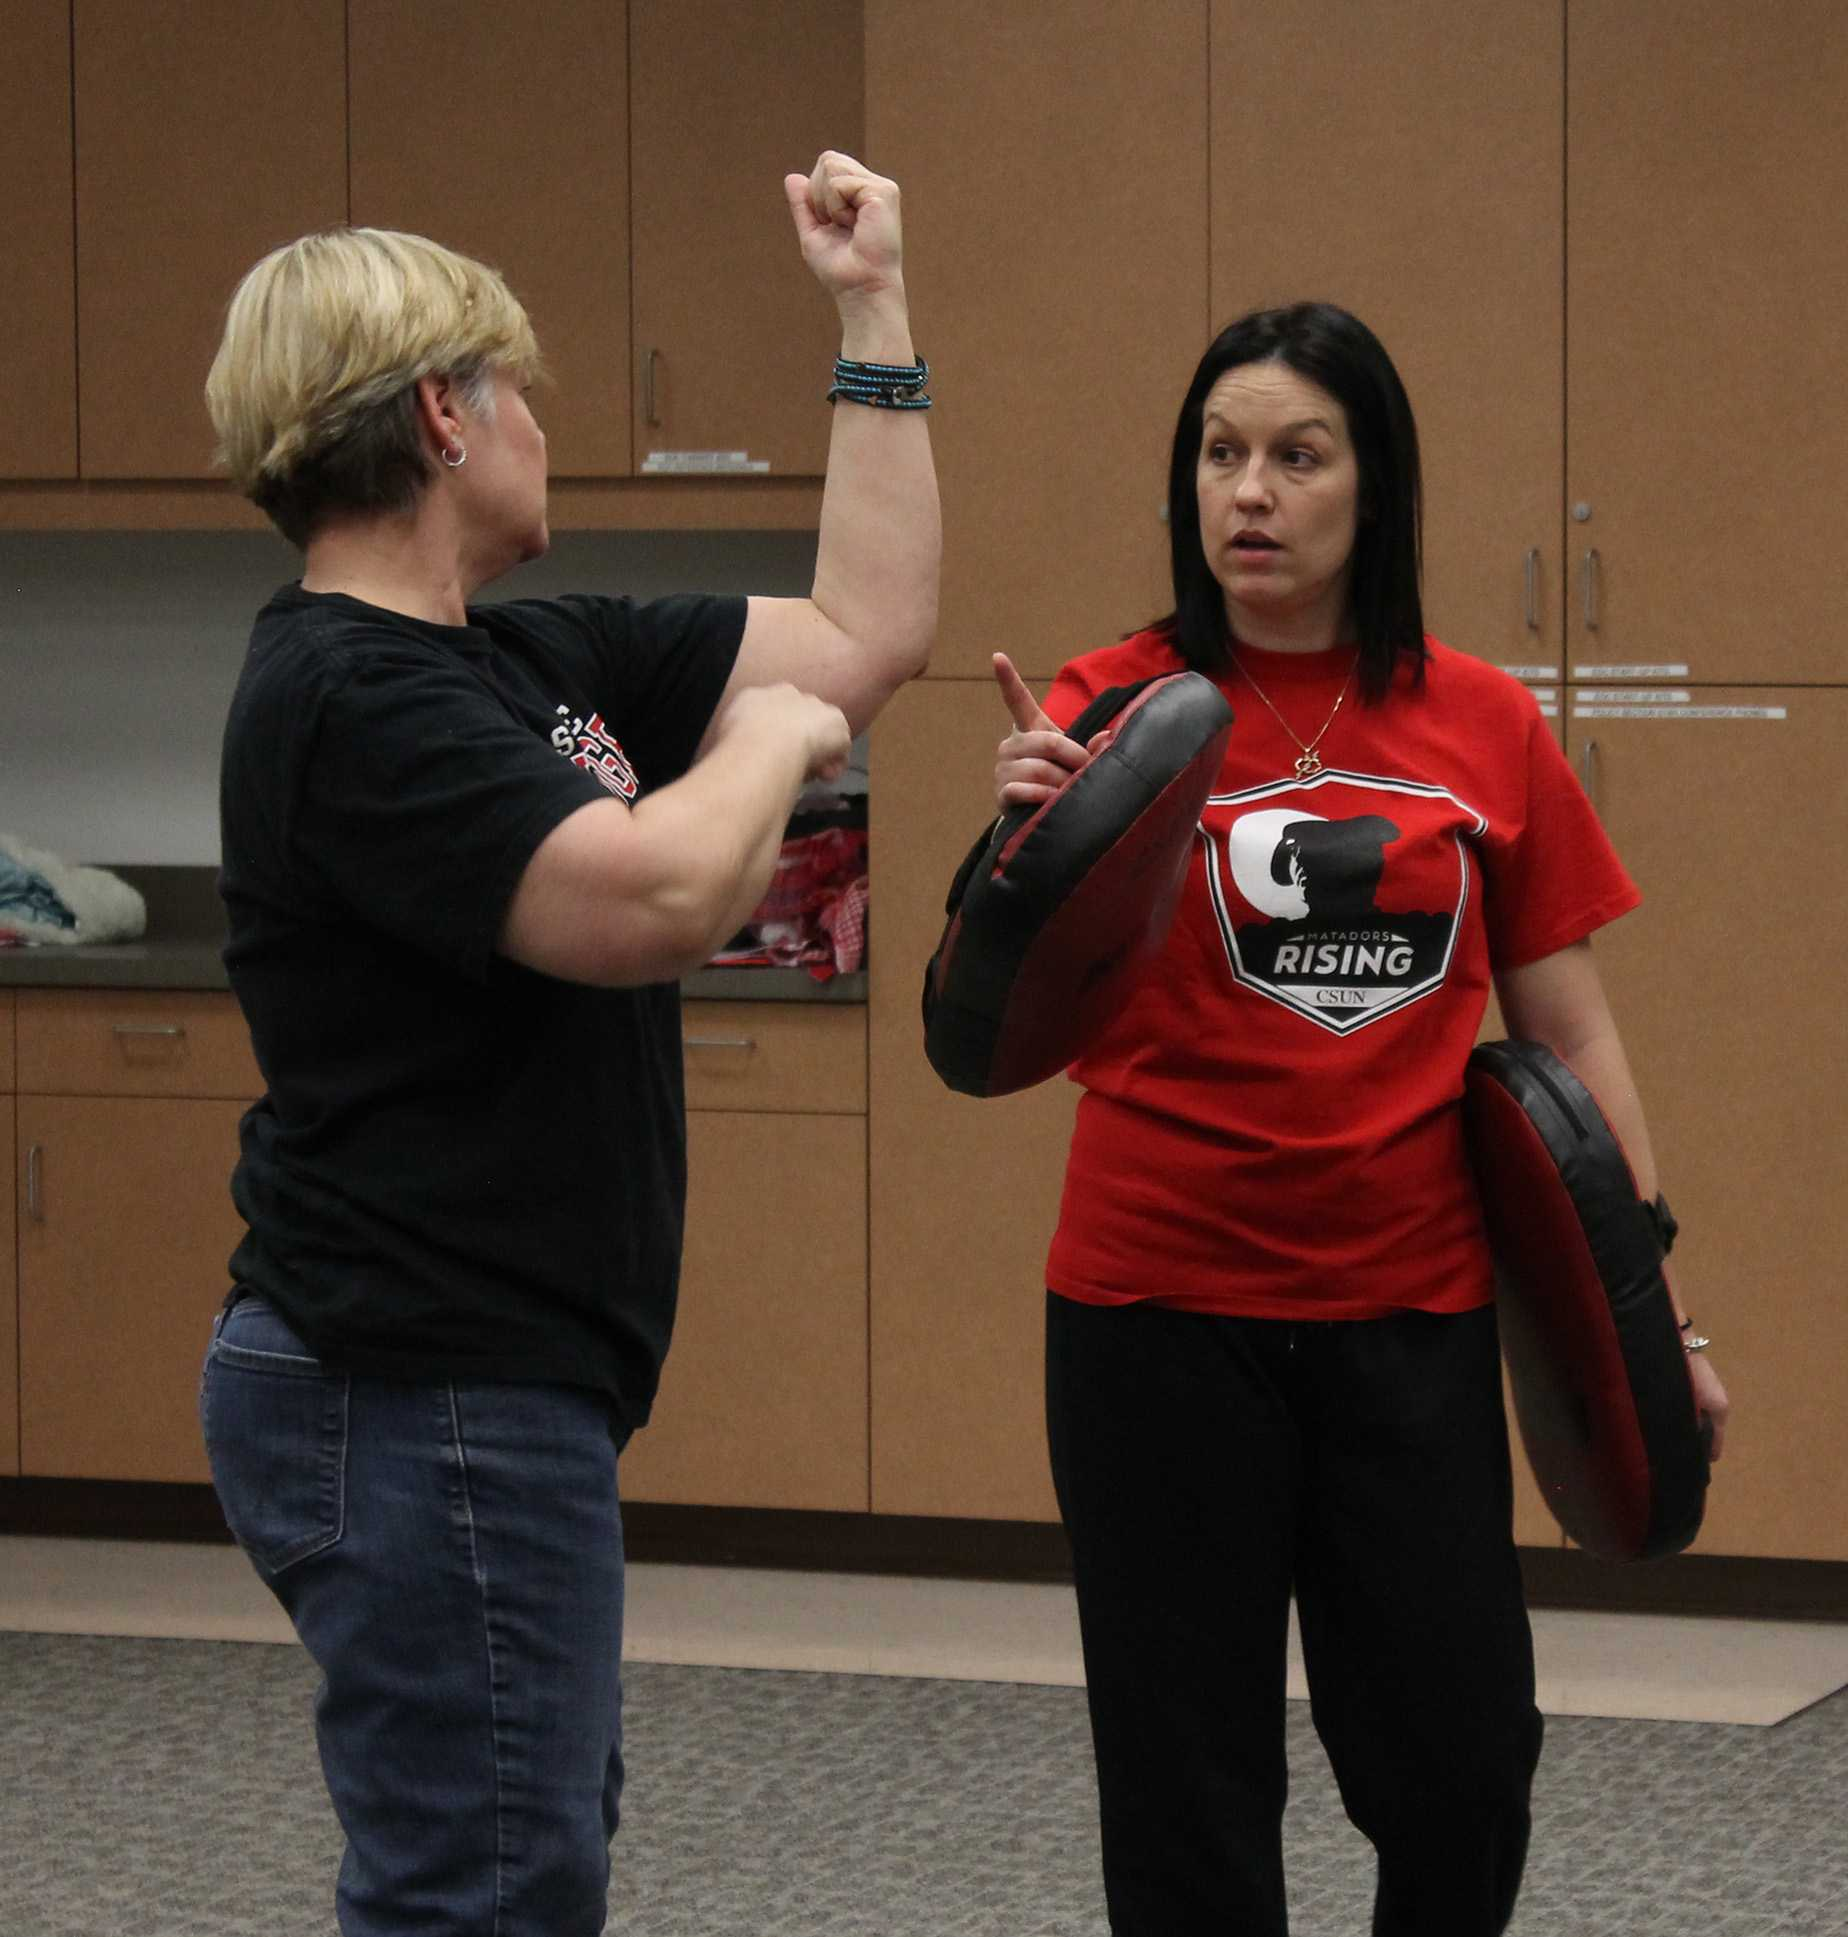 Instructor Stacy Nowak (right) corrects a participant during one of the Tuesday evening classes inside the training room on the 2nd floor of Police Department Services. Photo credit: Clare Calzada